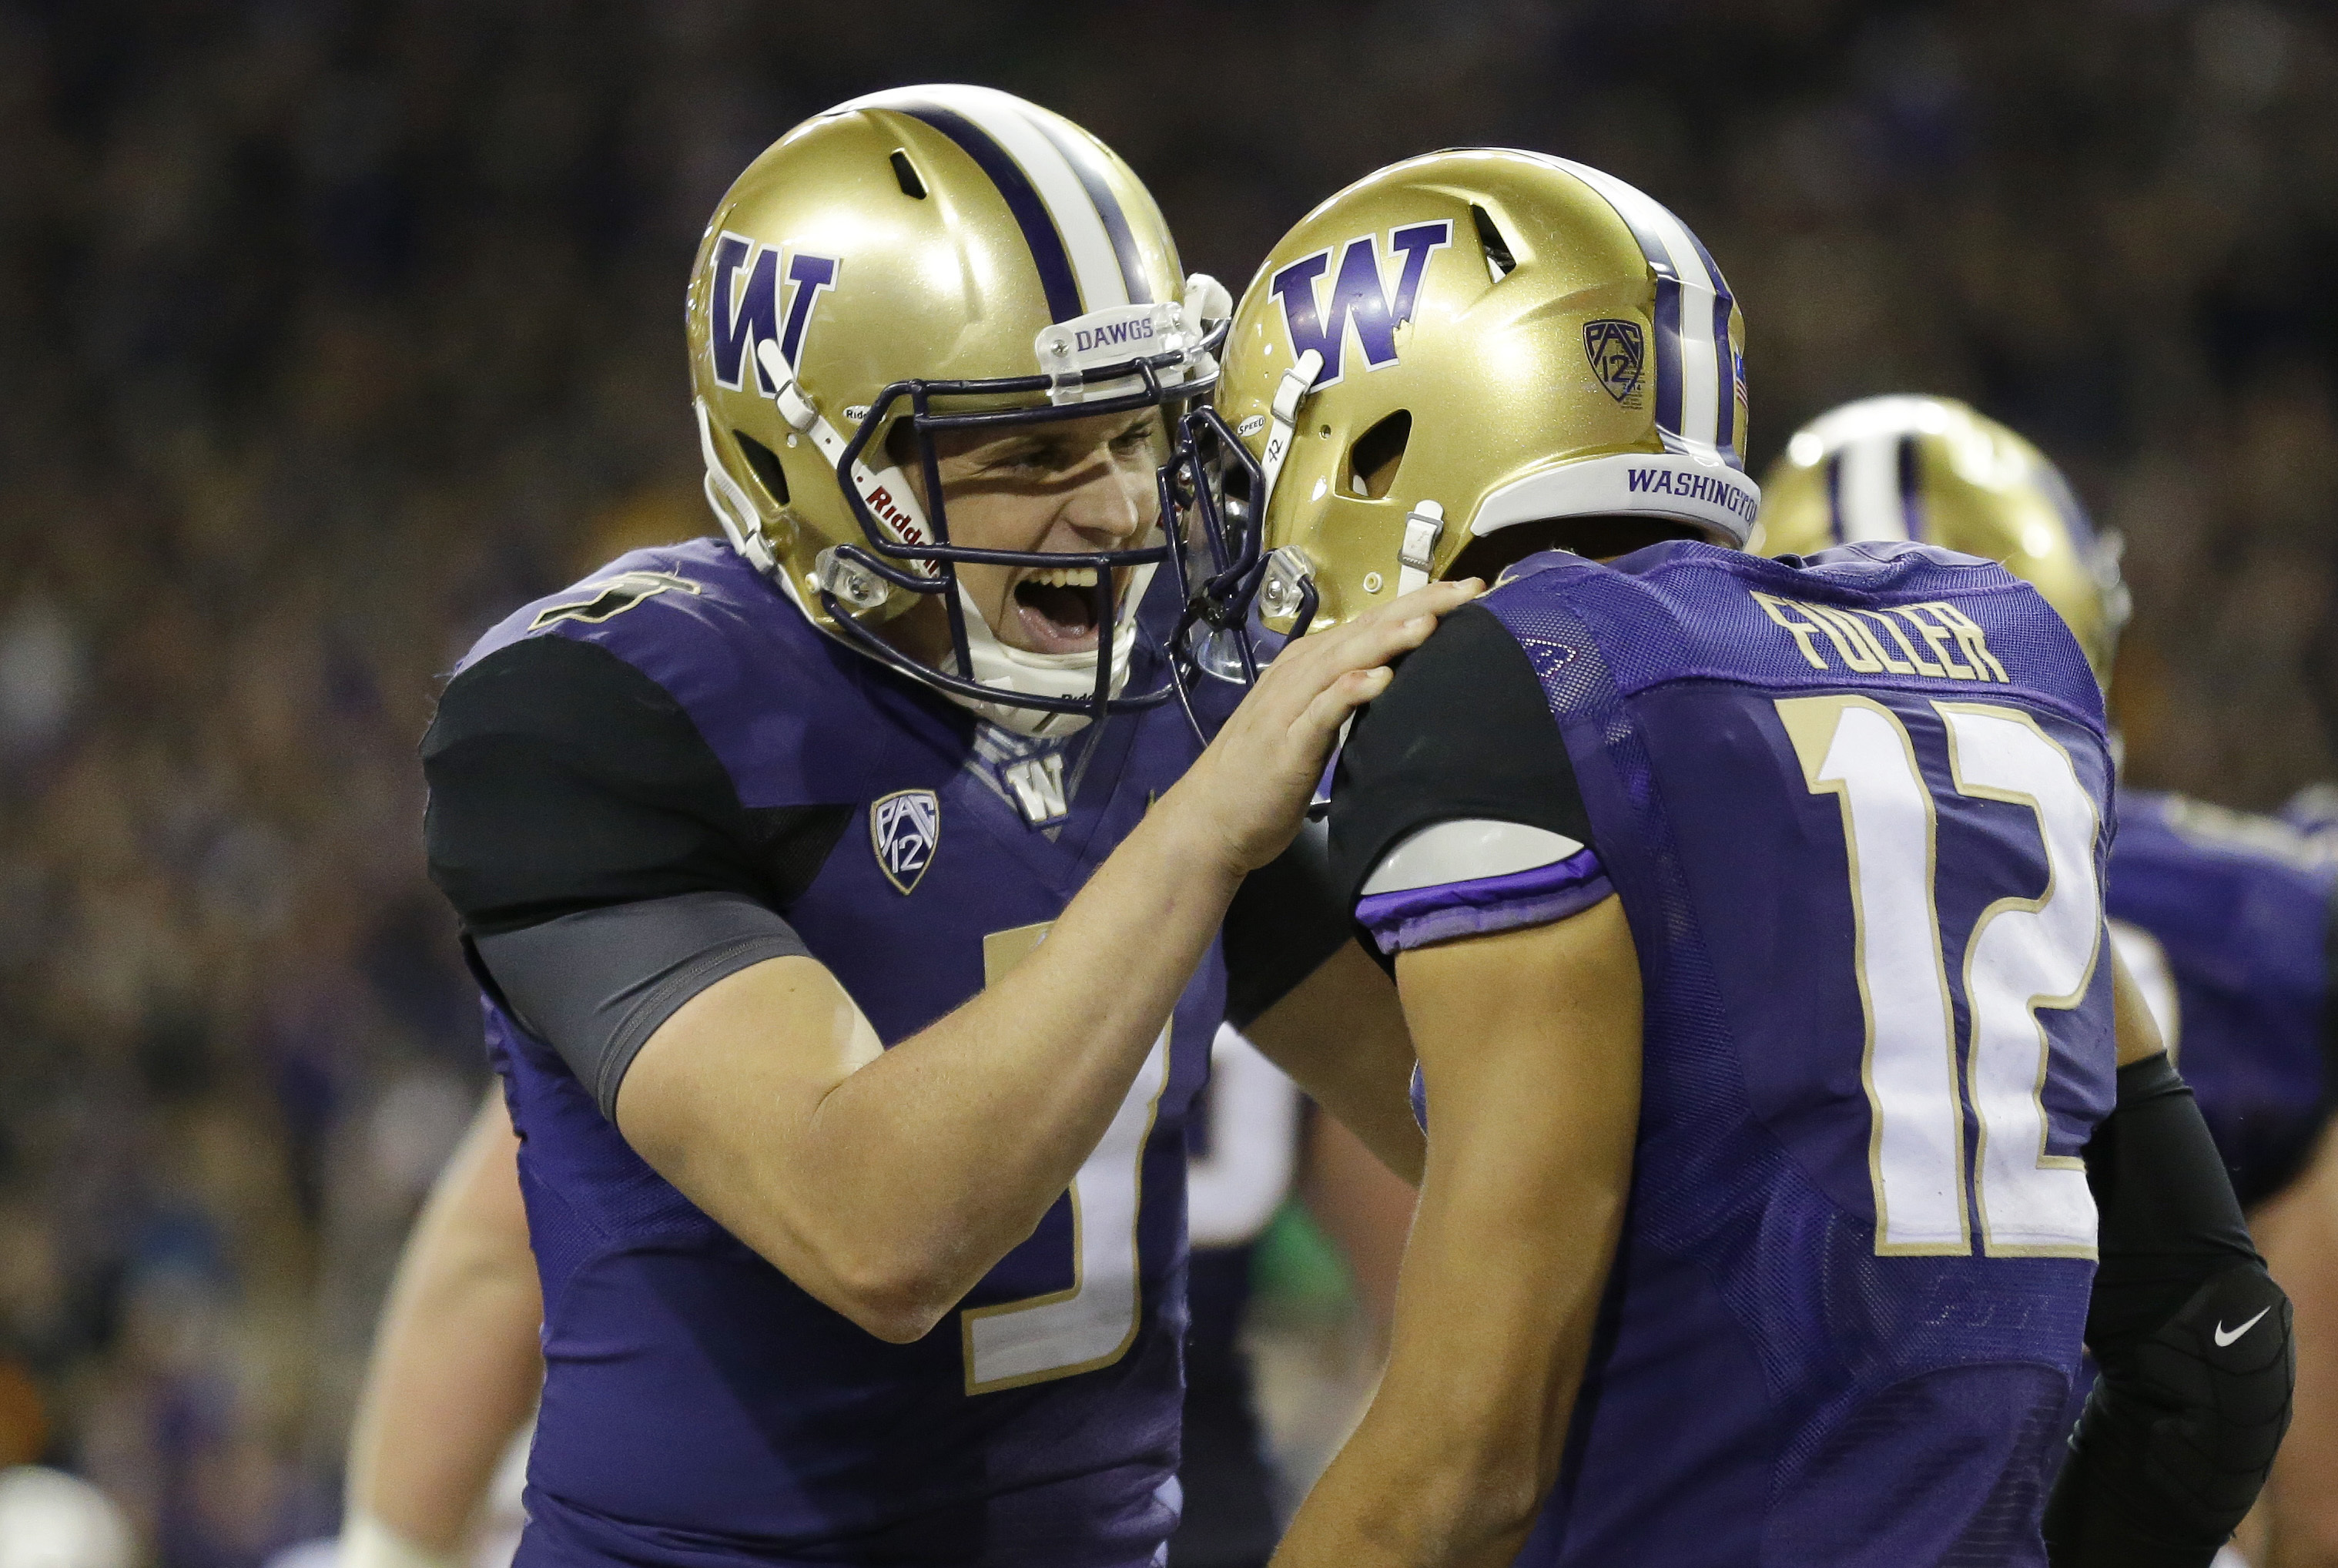 Washington quarterback Jake Browning, left, celebrates with wide receiver Aaron Fuller (12) after Fuller caught a pass from Browning for a touchdown during the second half of an NCAA college football game against Stanford on Friday, Sept. 30, 2016, in Sea